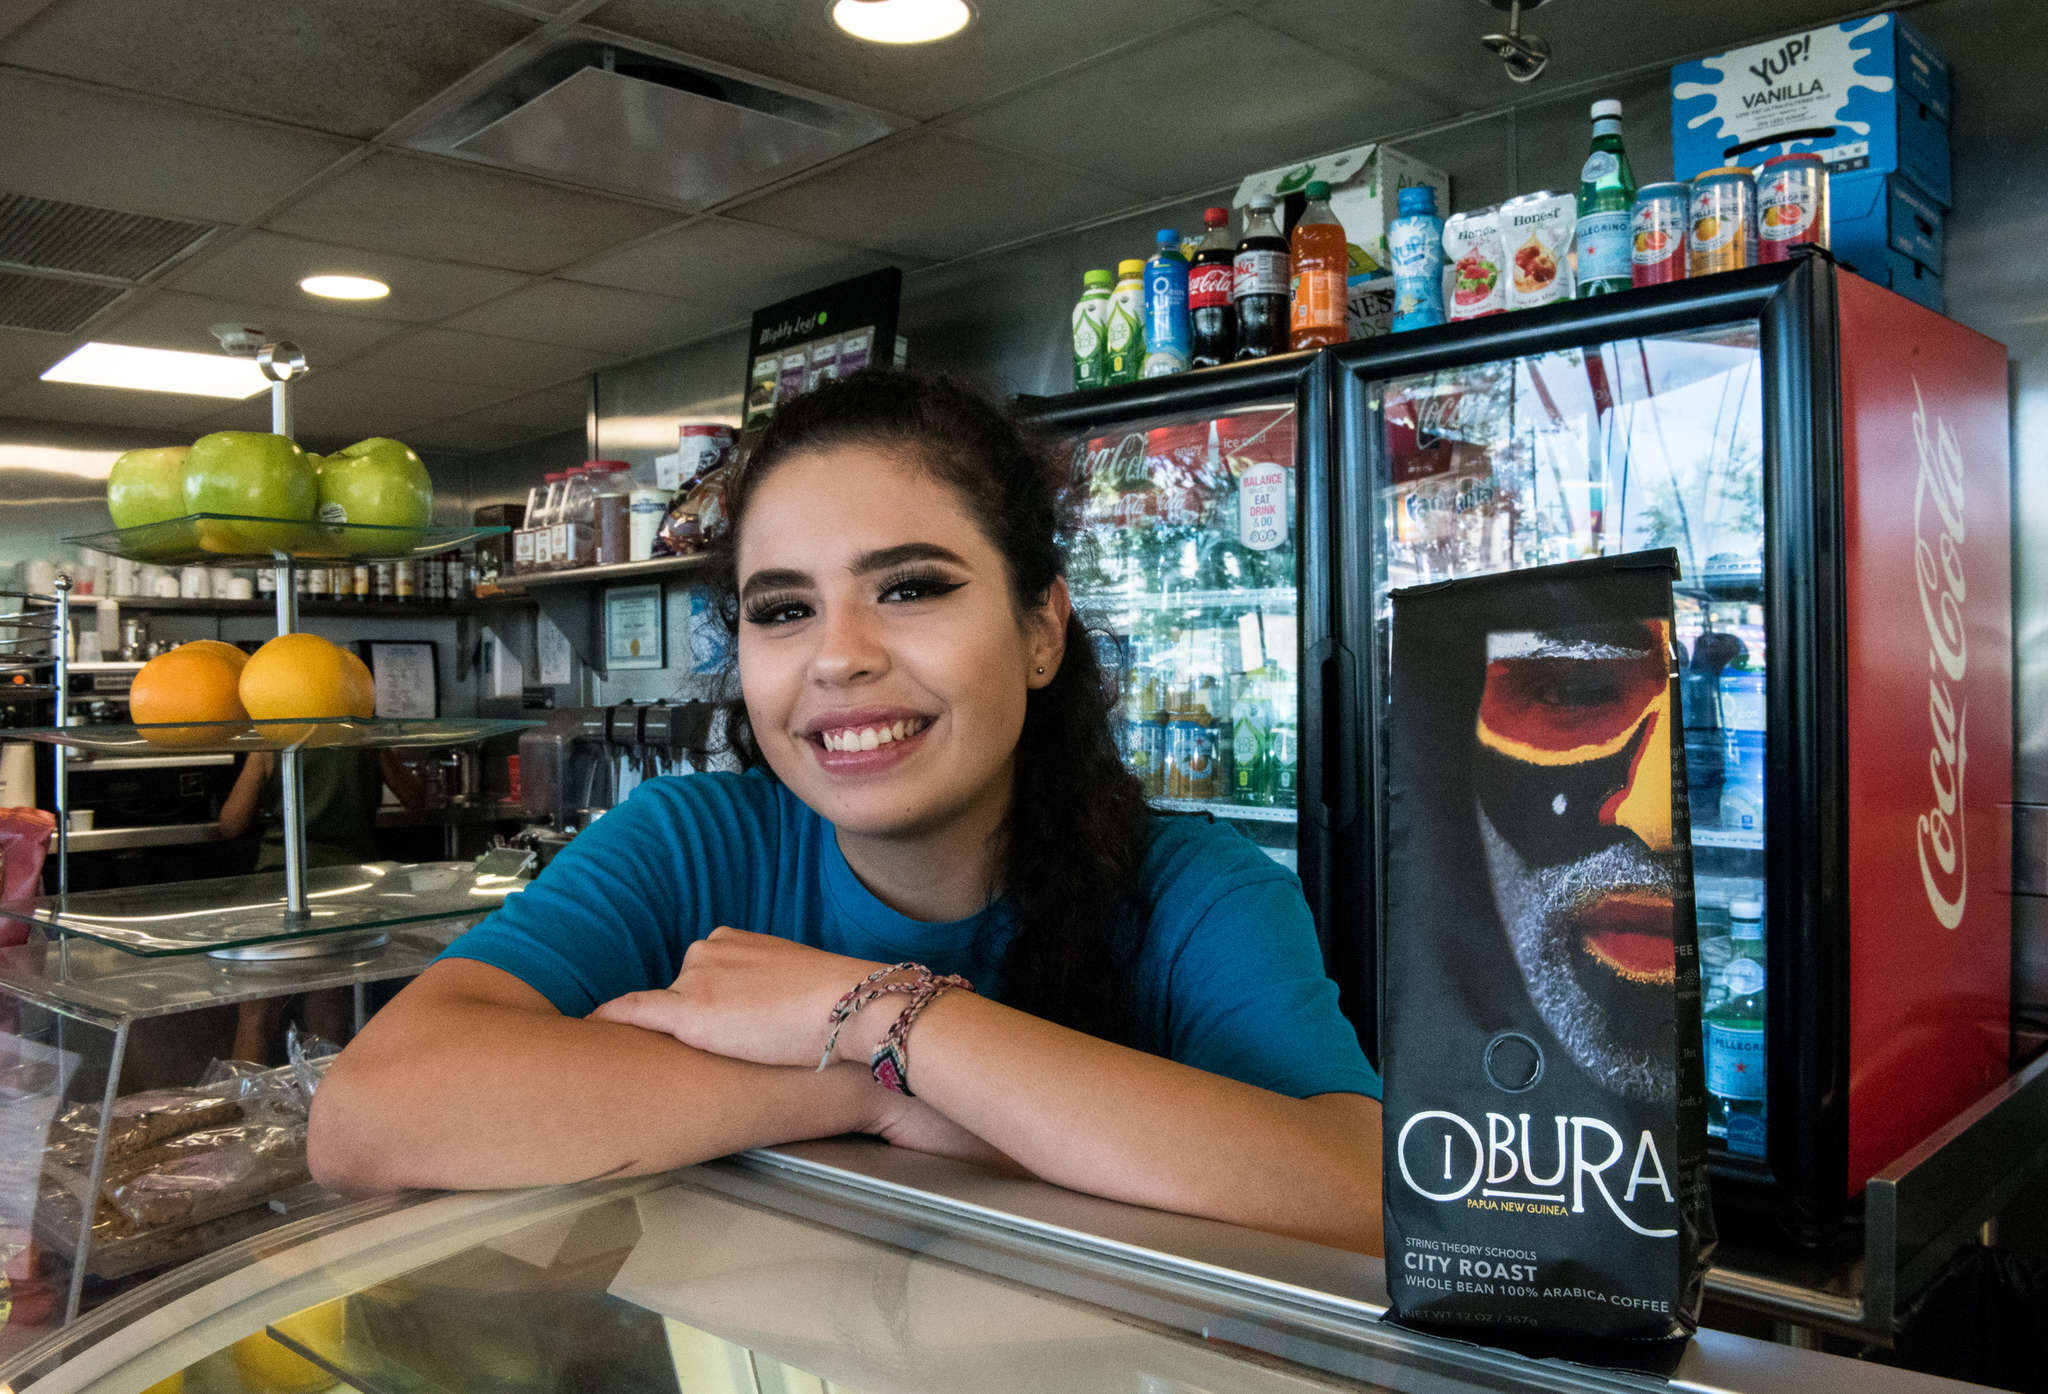 Isabella Bacciarini, a junior at String Theory High School and an employee at Logan Square Cafe in Center City, next to a bag of Obura brand coffee beans at the cafe.